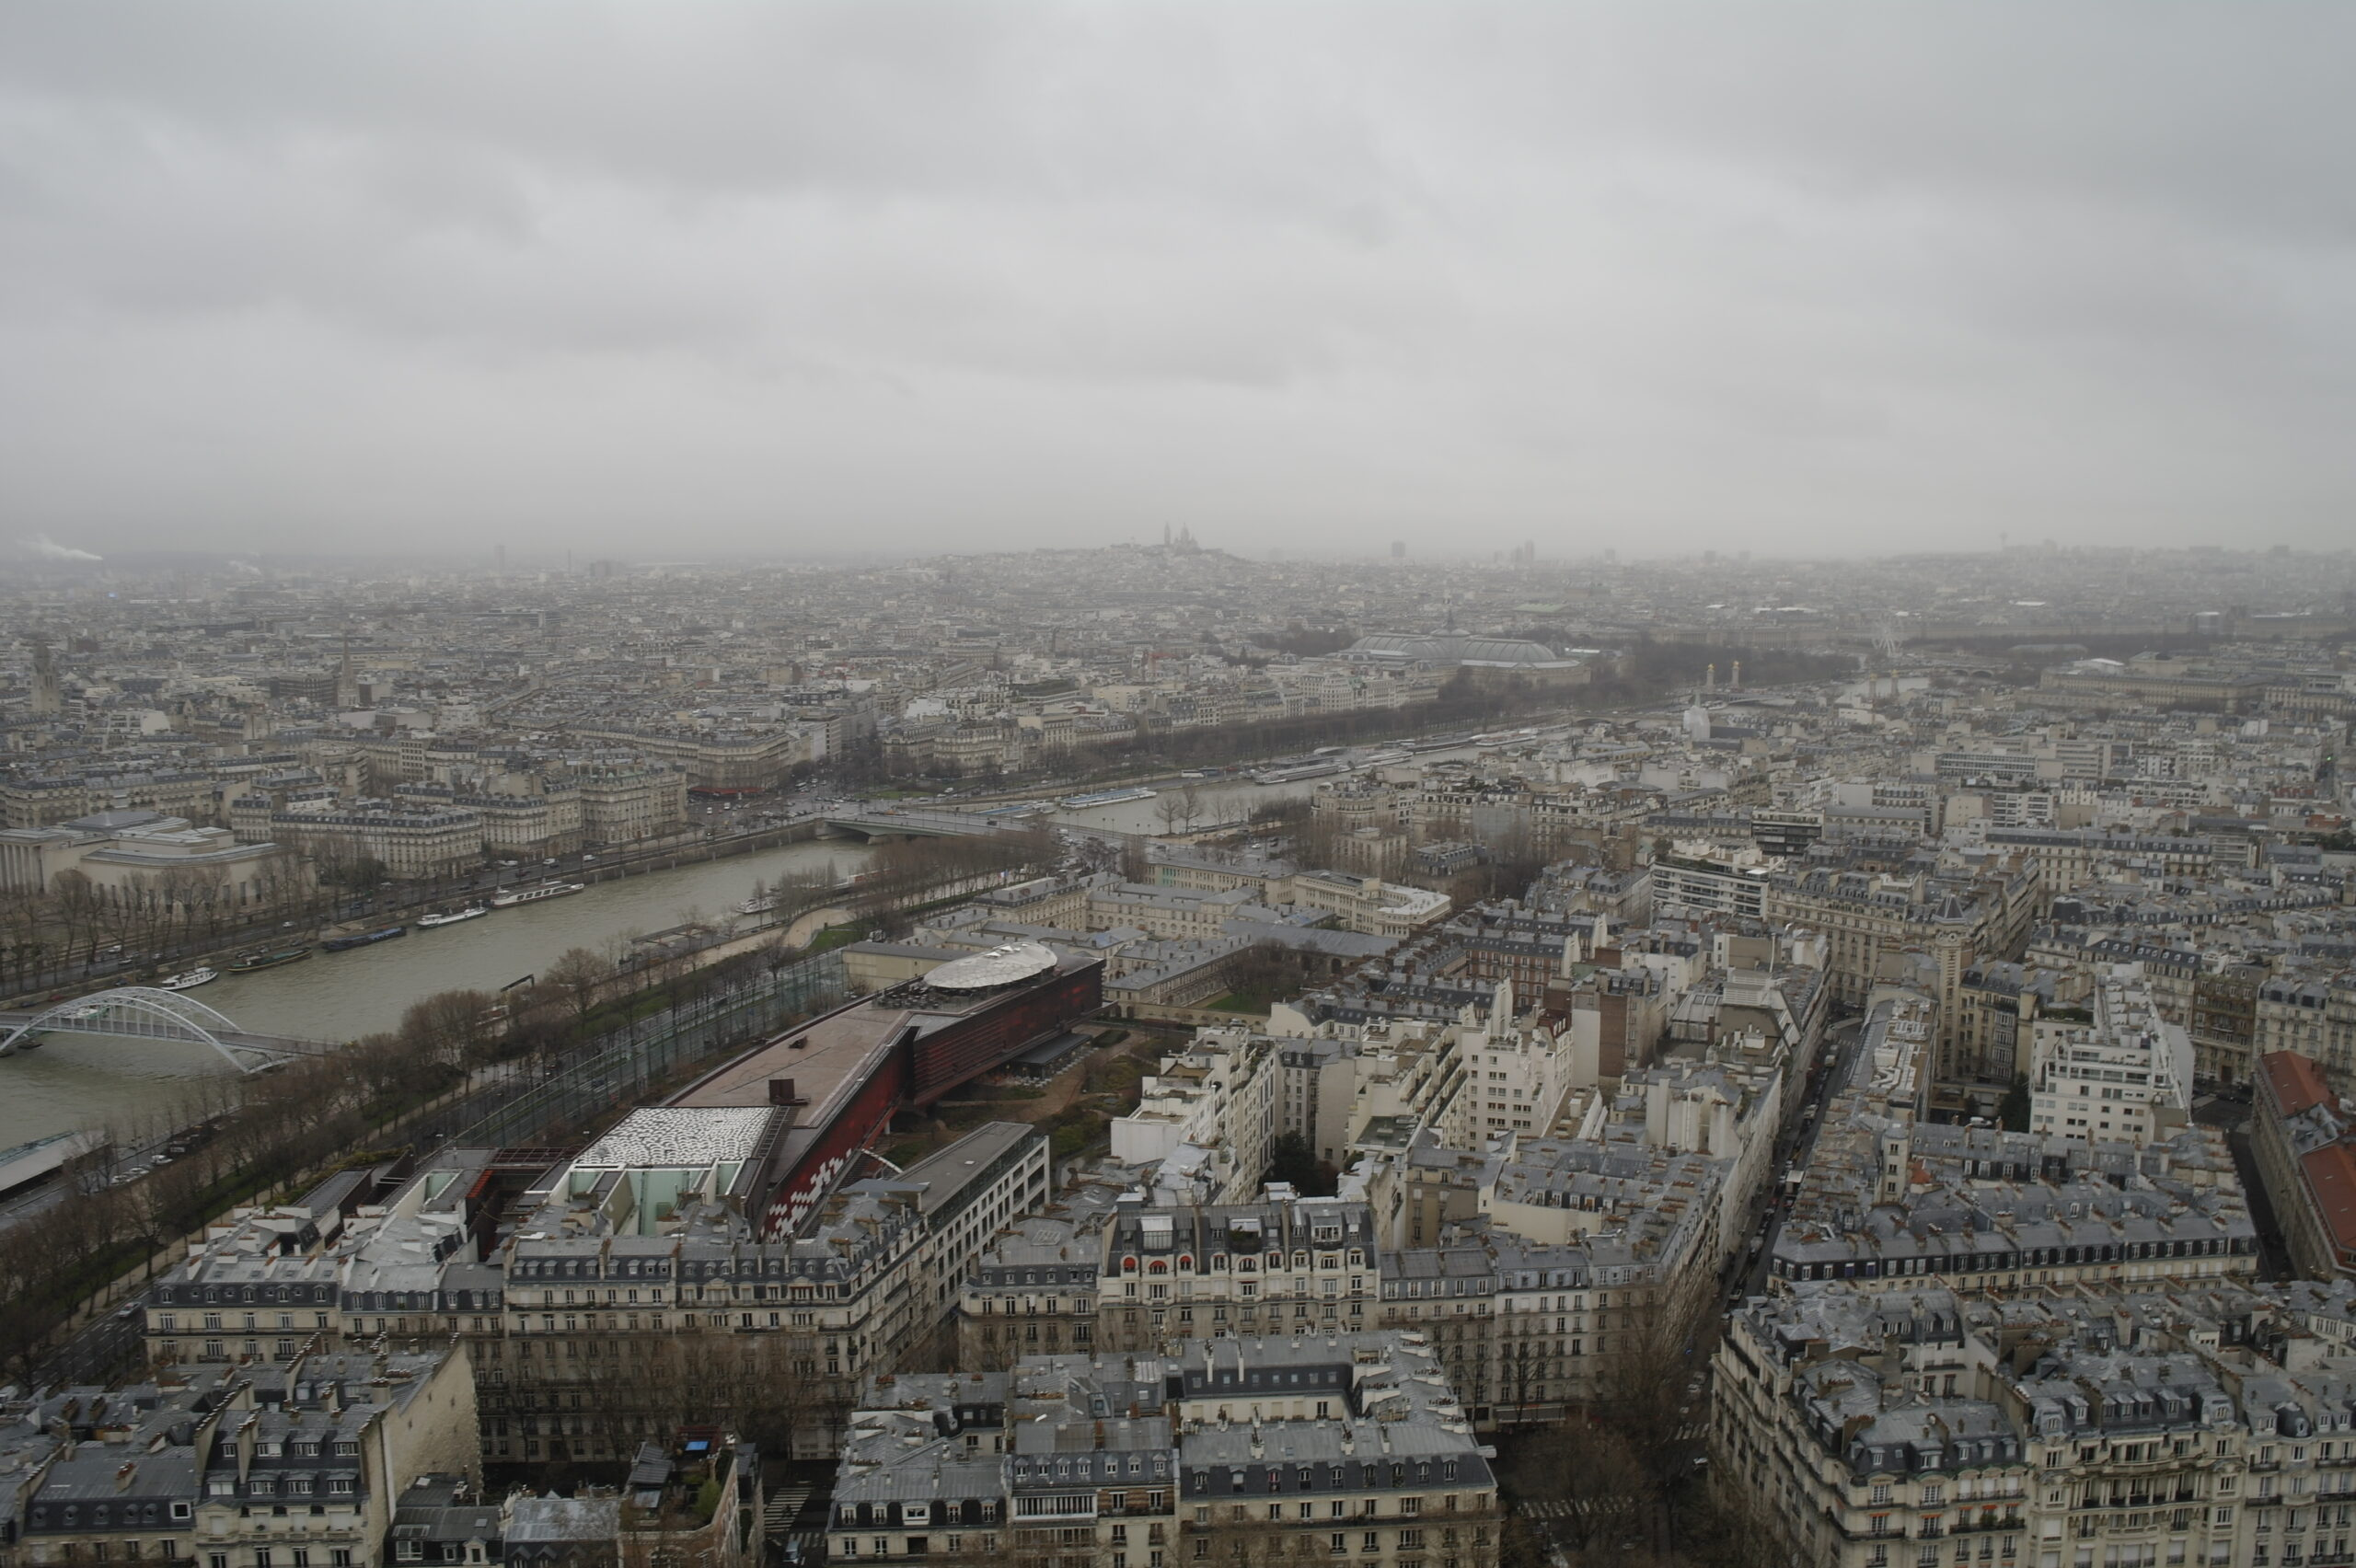 Panoramic views from the top of the Eiffel Toweranoramic views form the top of the Eiffel Tower